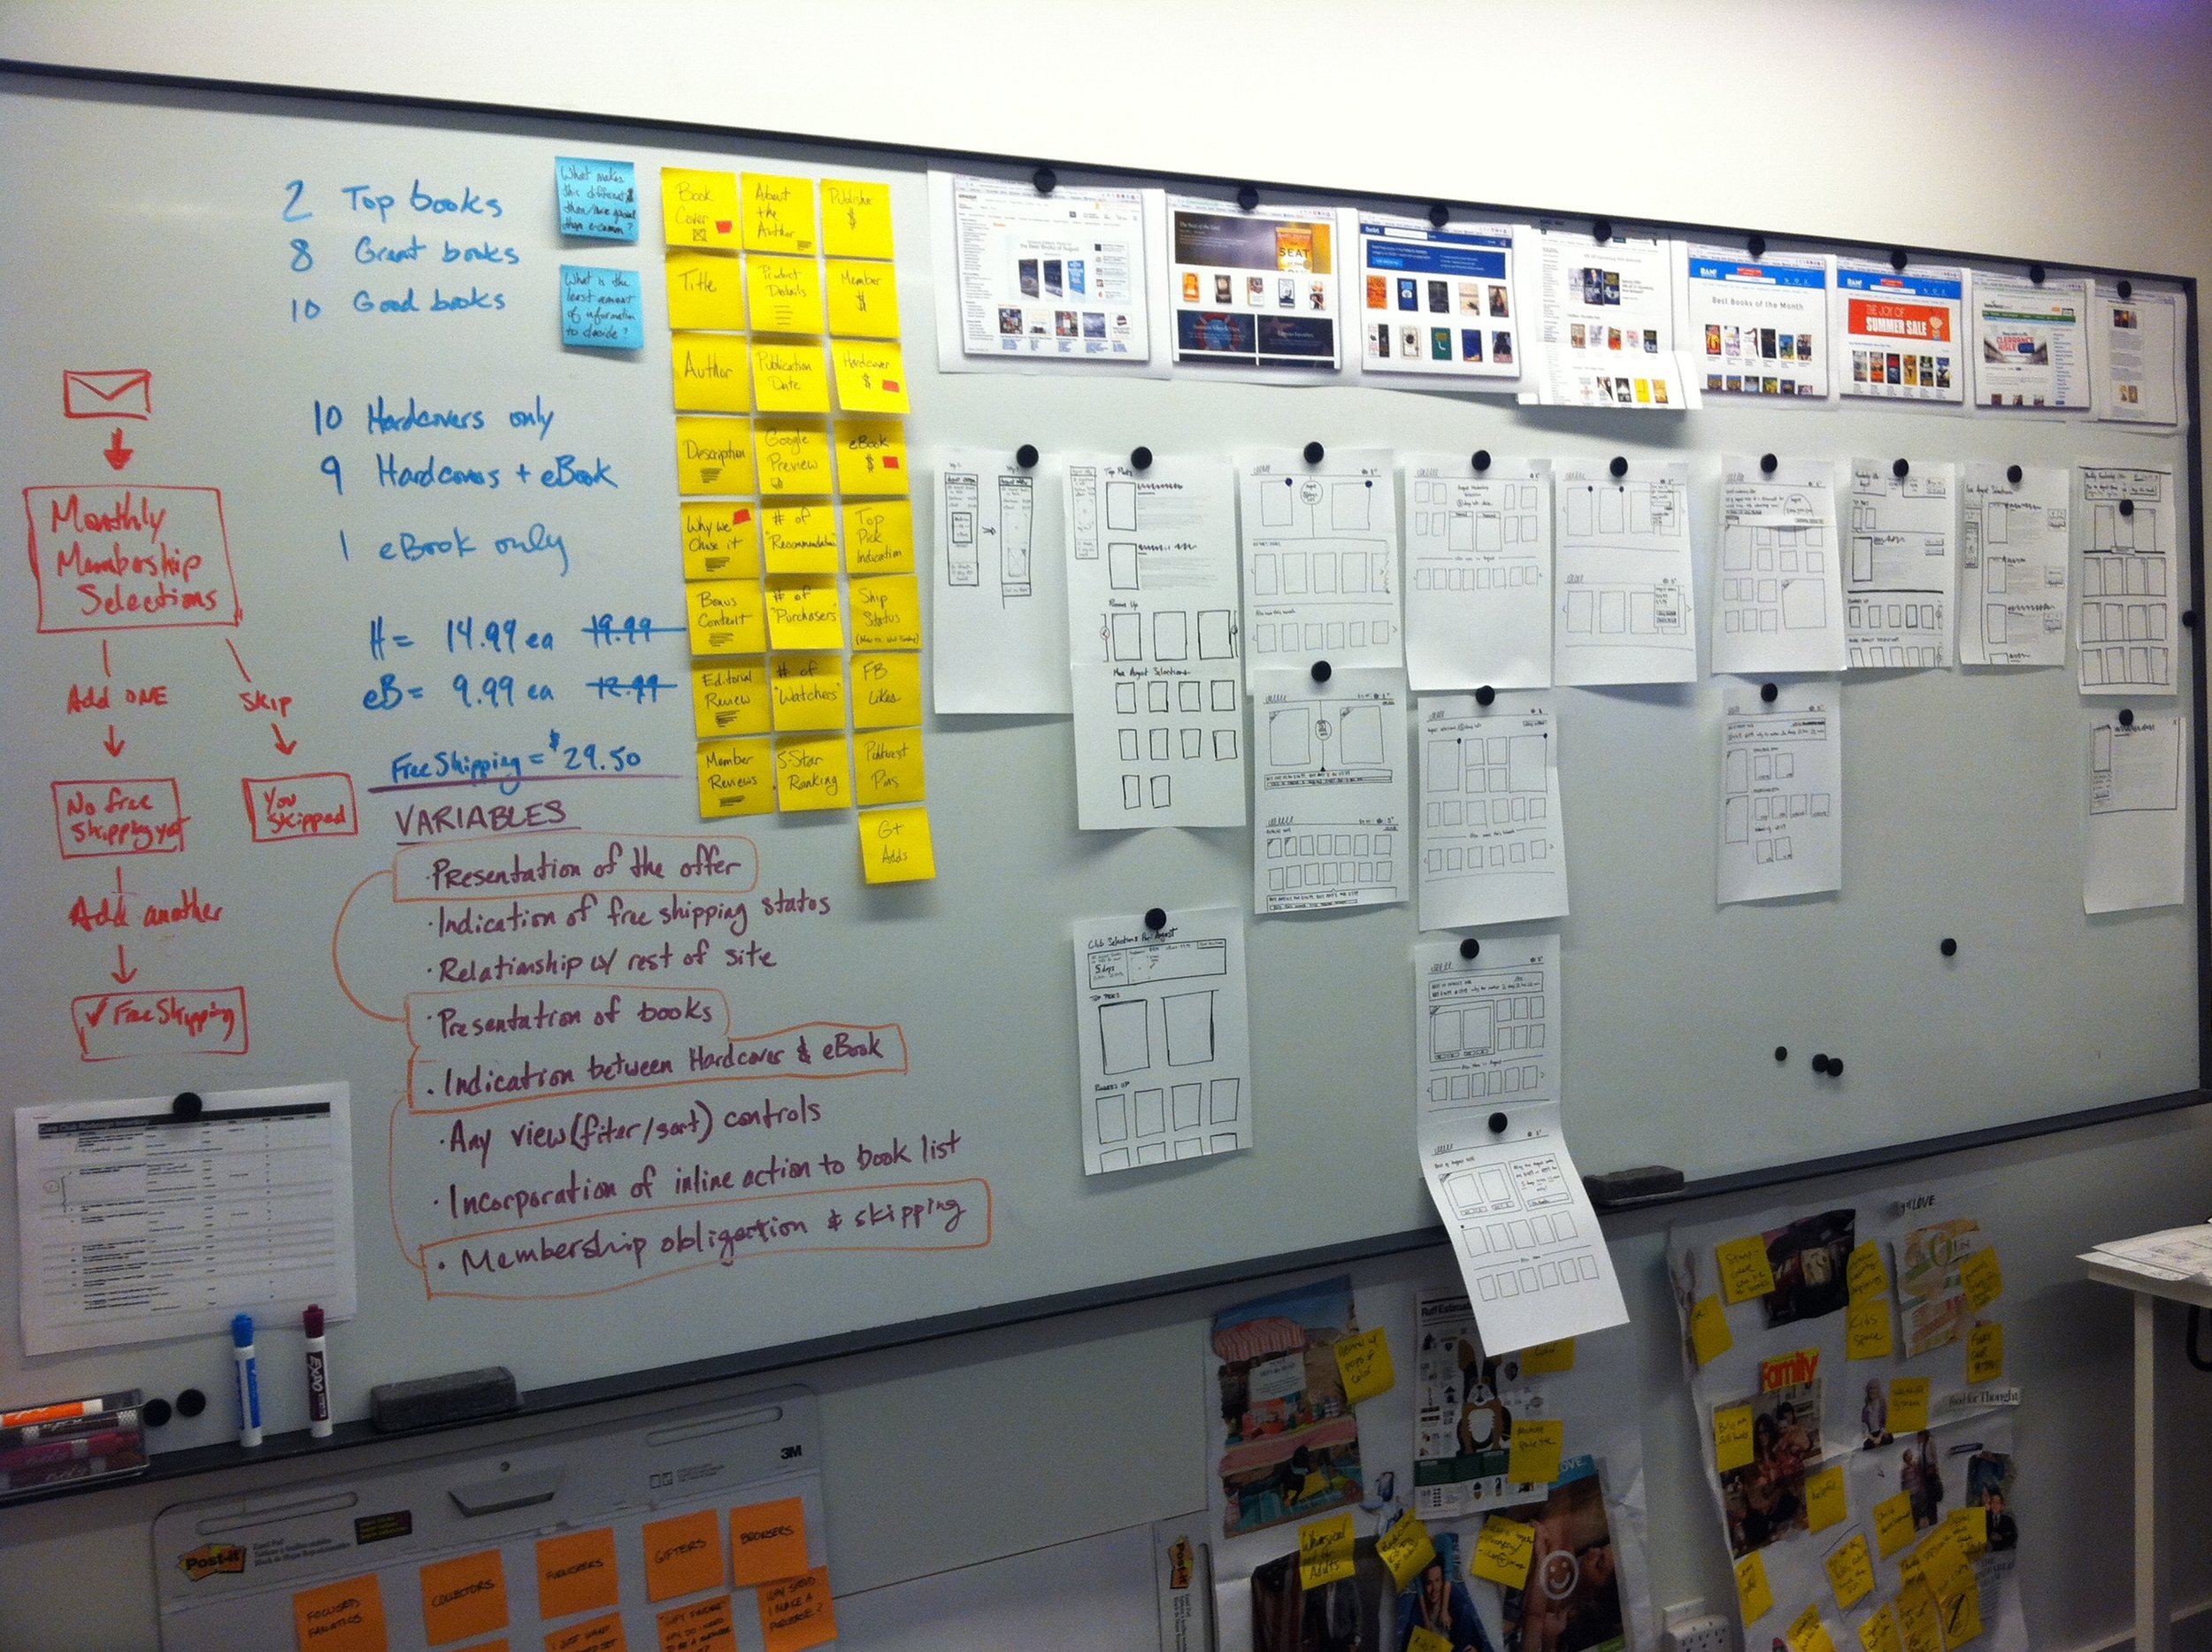 To validate new business model ideas, we sketched ideas to see how clearly we could communicate through an interface.